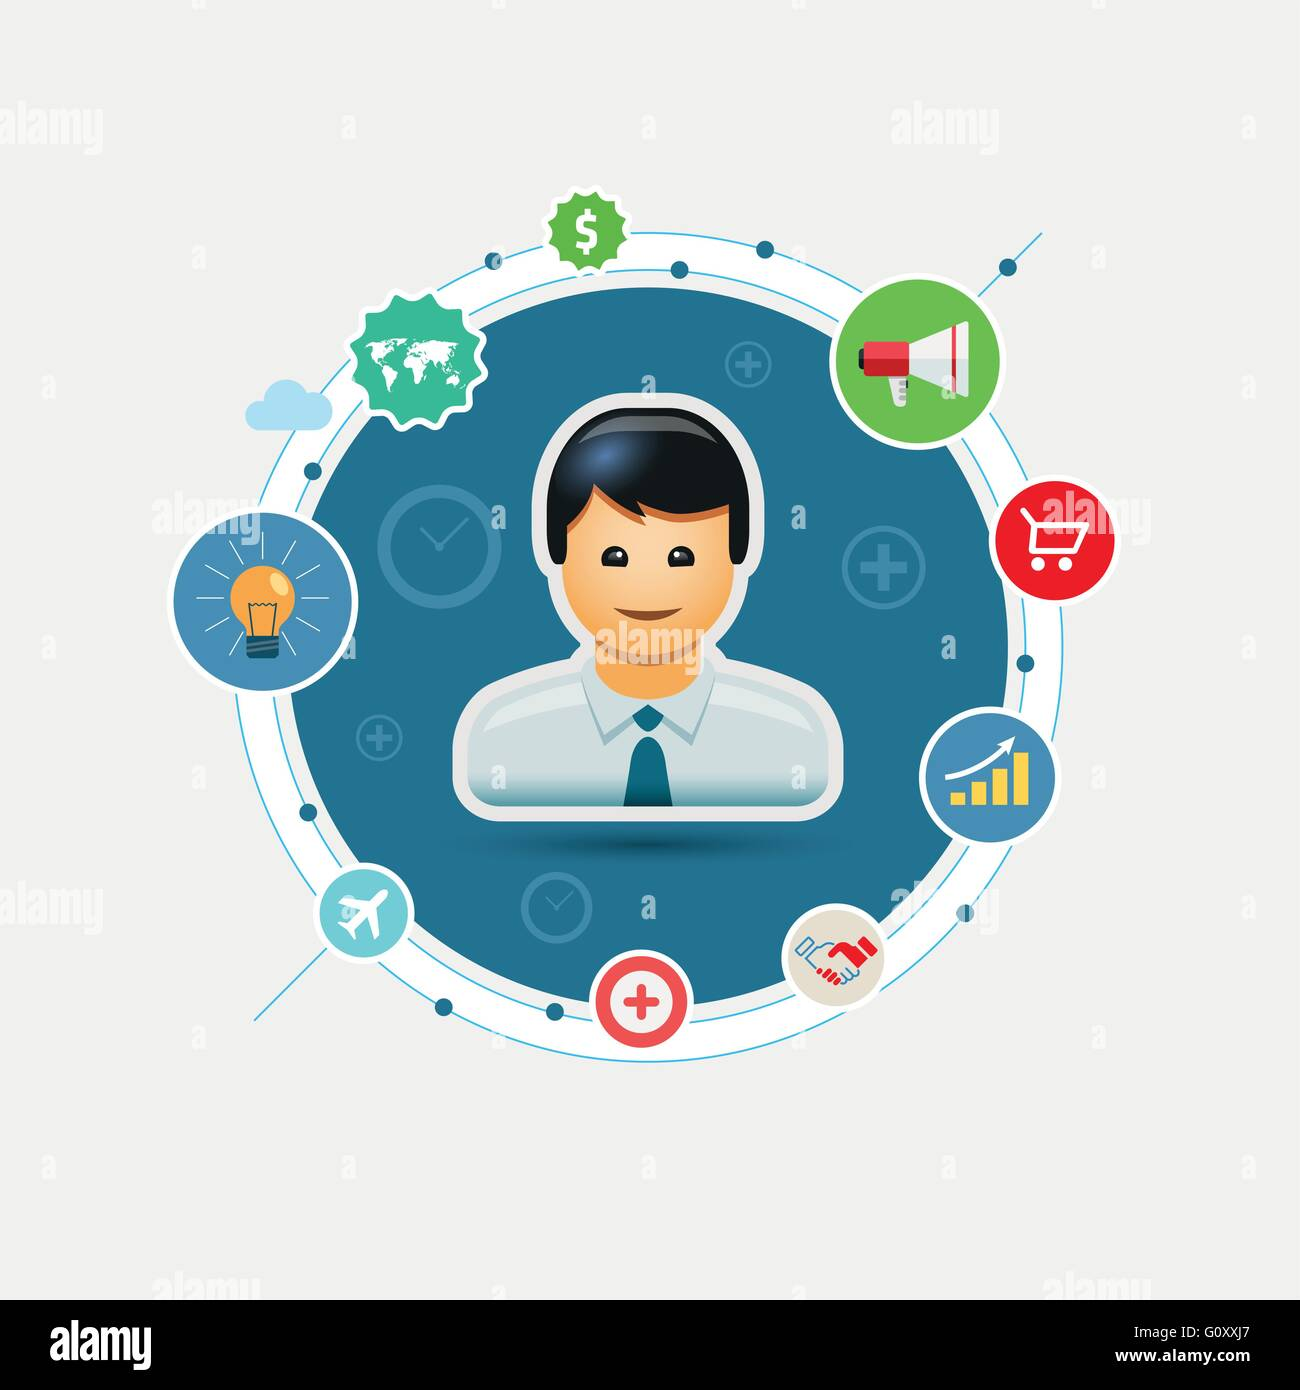 Vector global business marketing illustration. EPS10 file. - Stock Image